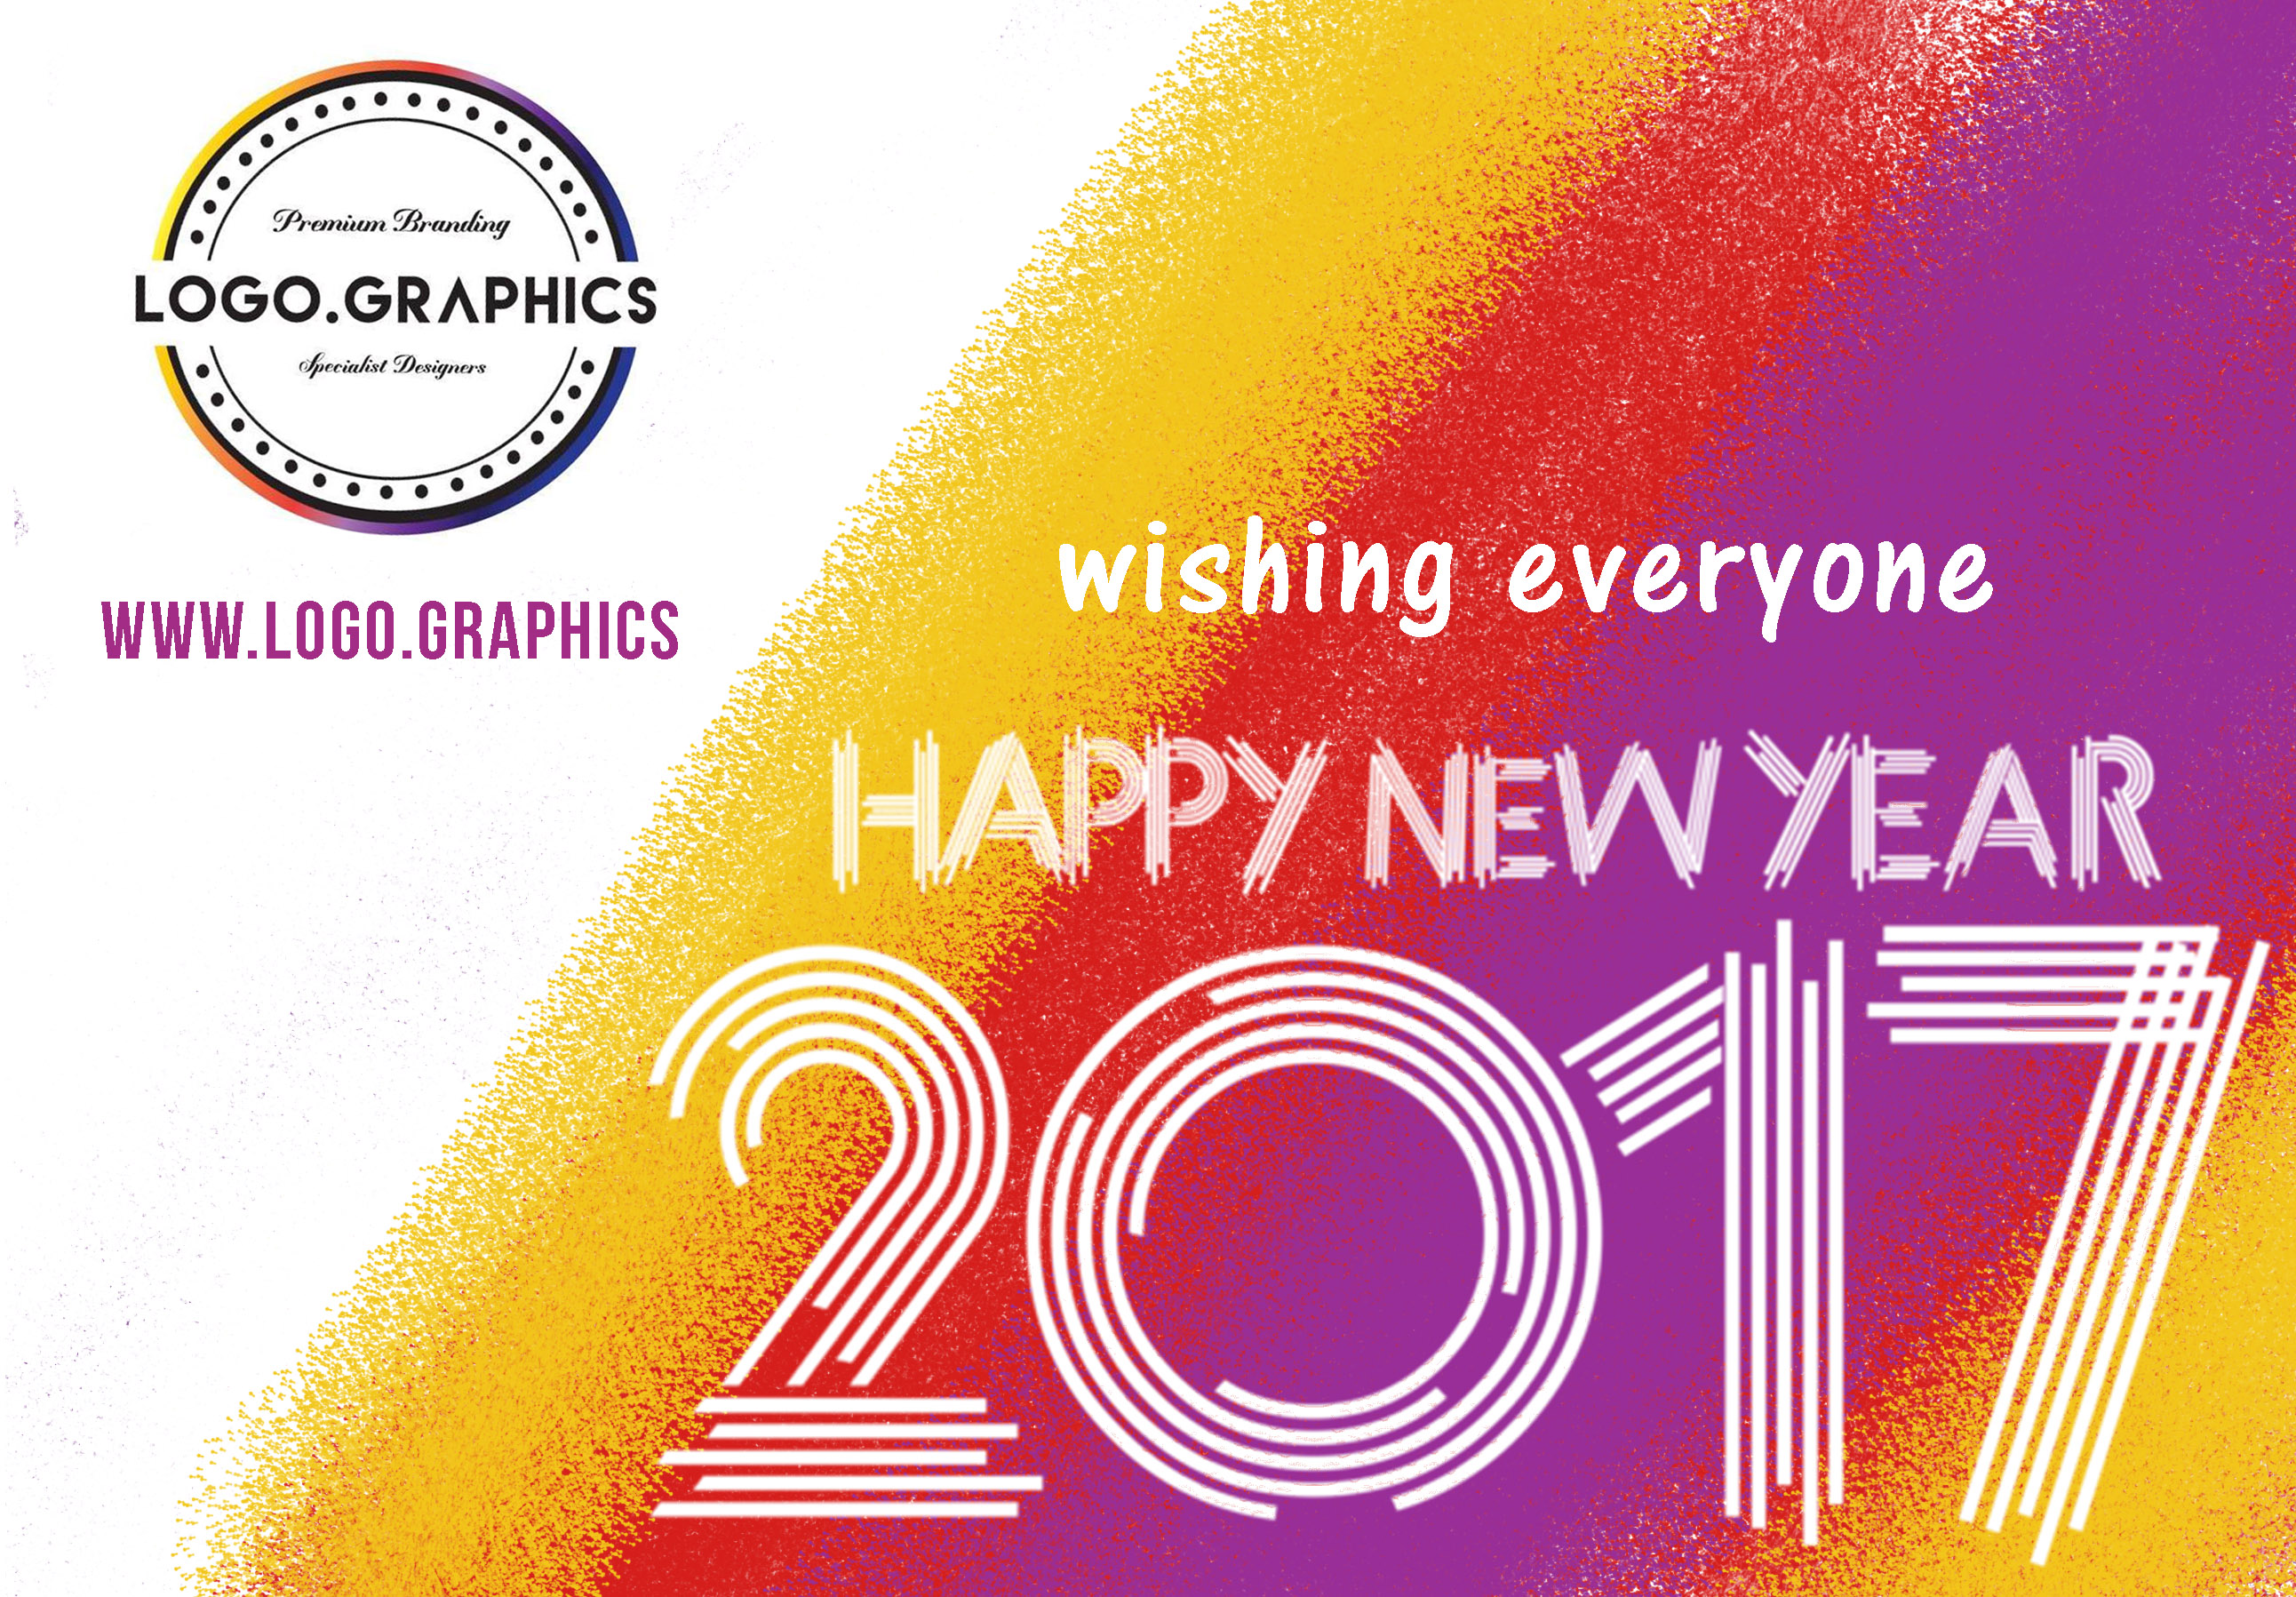 Logo.Graphics Wishing Everyone A Happy New Year!